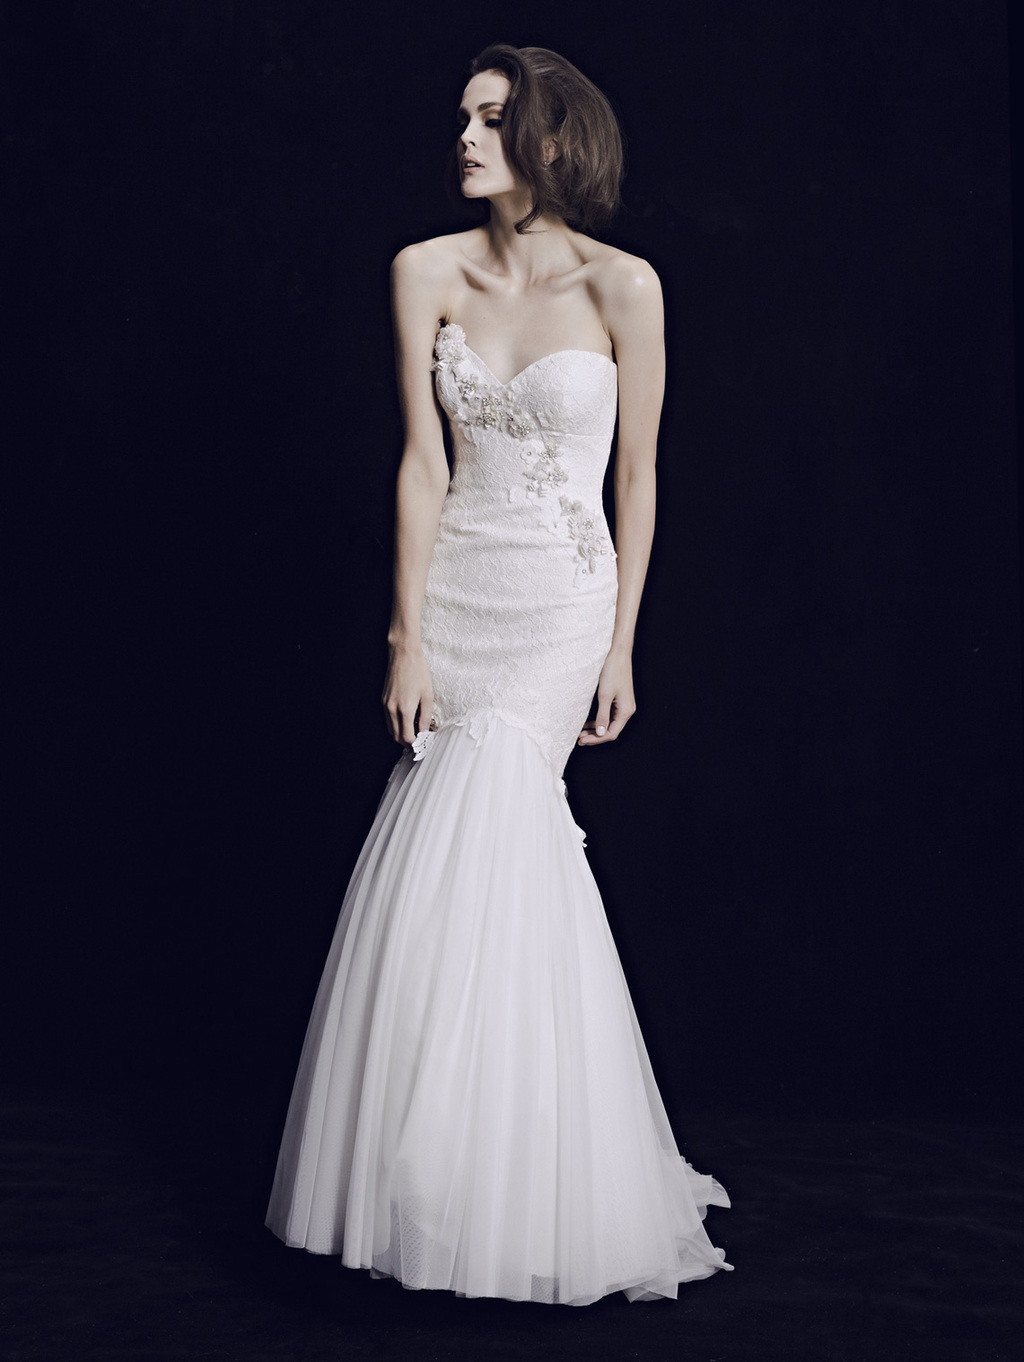 Mariana-hardwick-wedding-dress-2013-bridal-classic-11.full